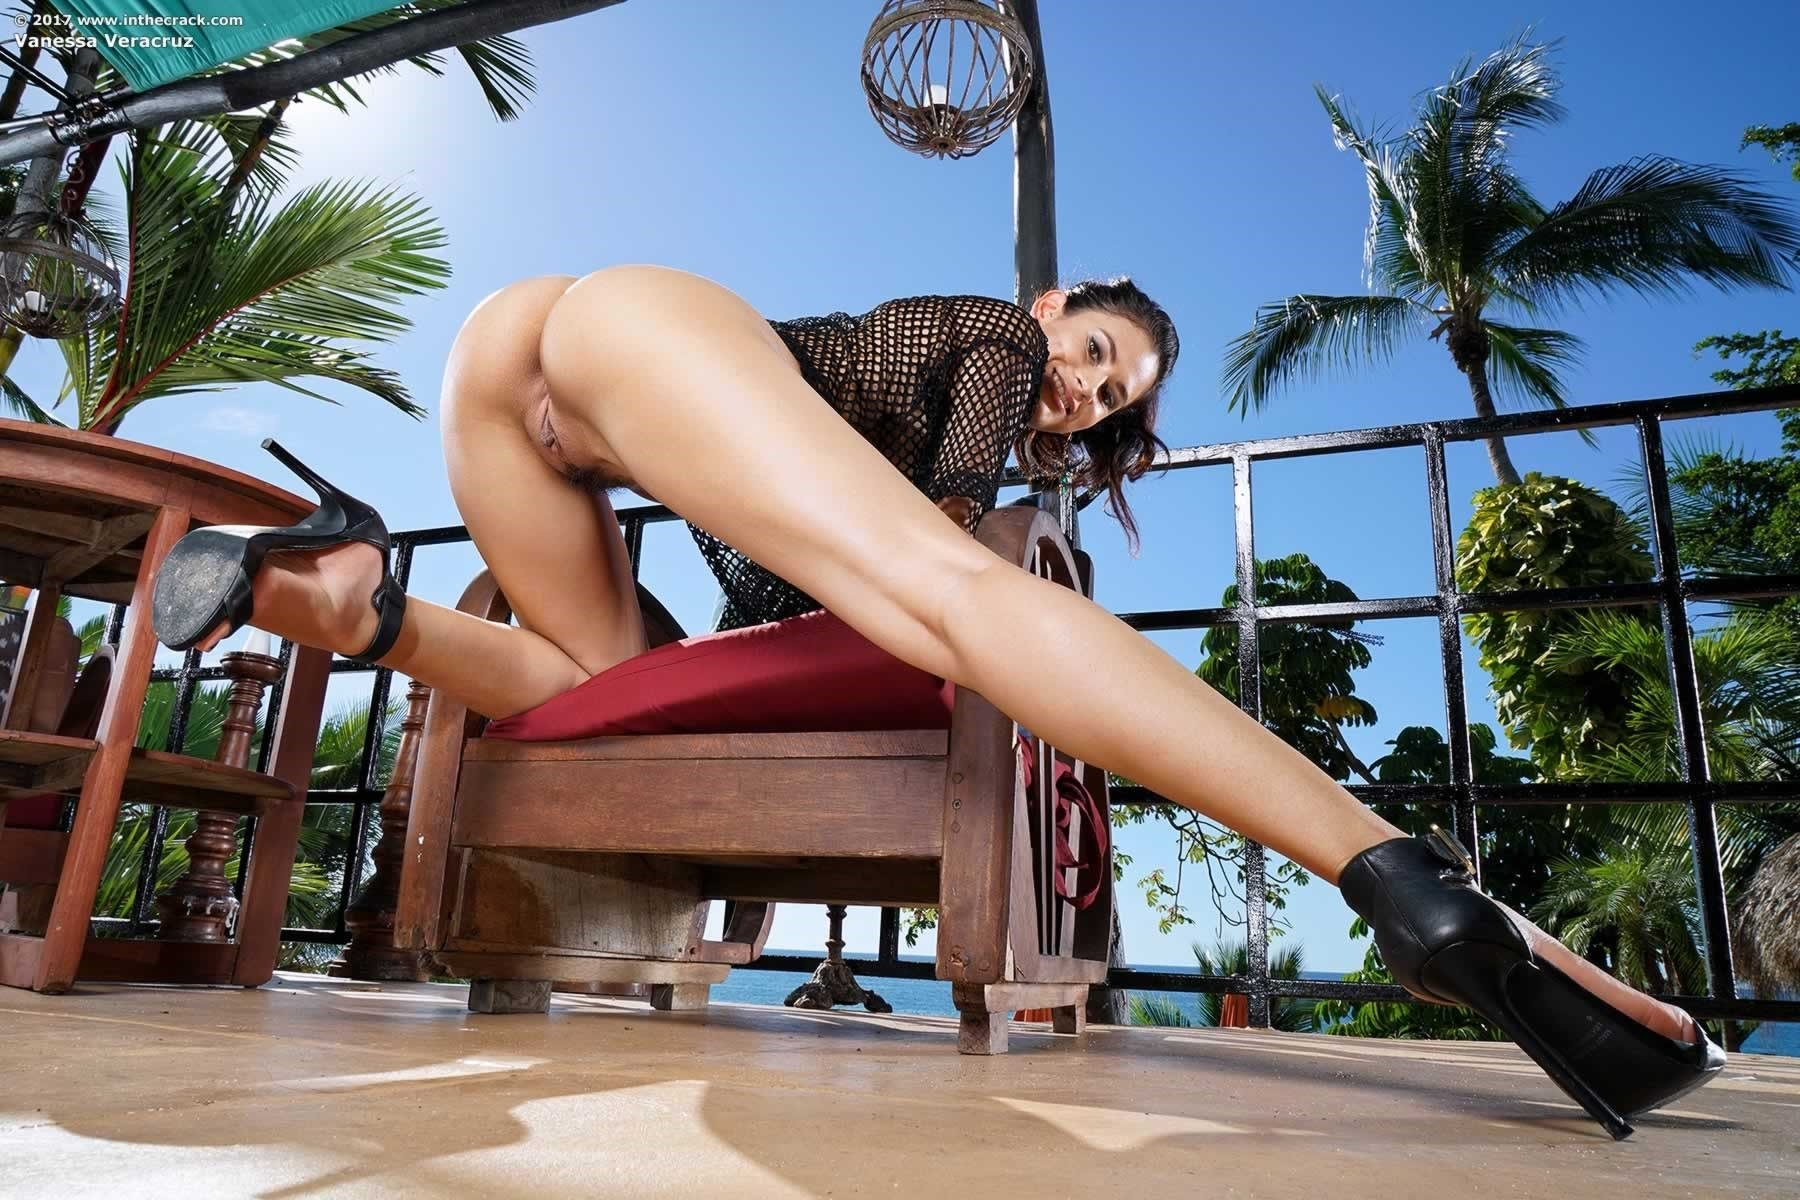 Vanessa Veracruz Balcony Cum - Fine Hotties - Hot Naked ...